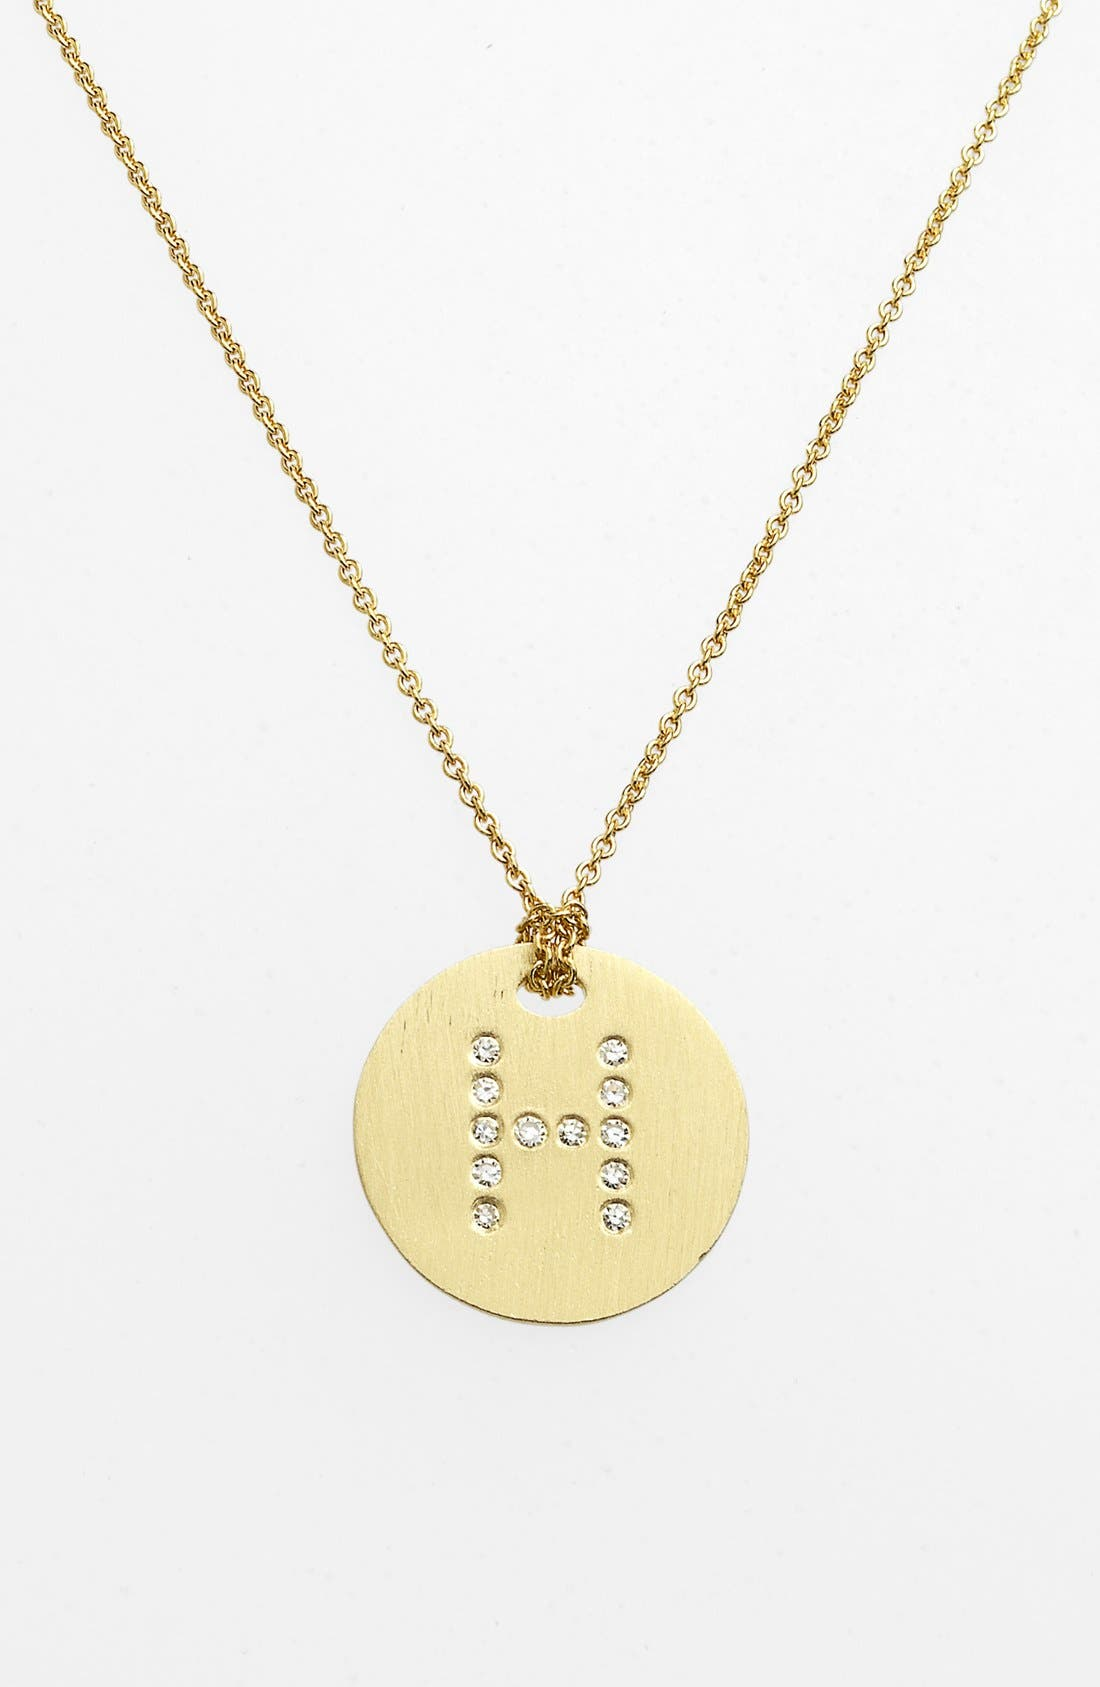 ROBERTO COIN Tiny Treasures Diamond Initial Disc Pendant Necklace